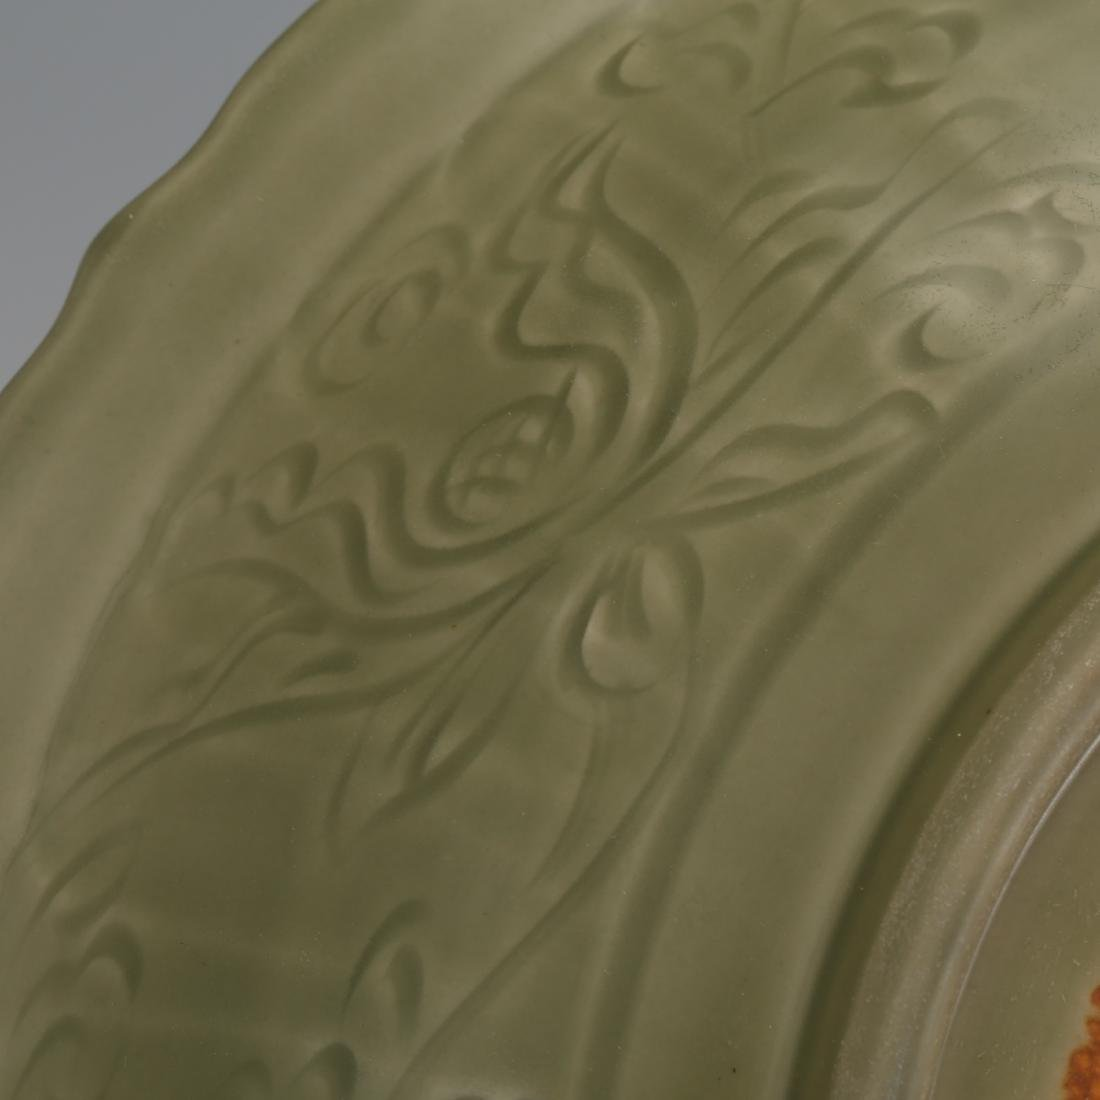 CHINESE CELADON LONGQUAN GLAZED CHARGER - 5